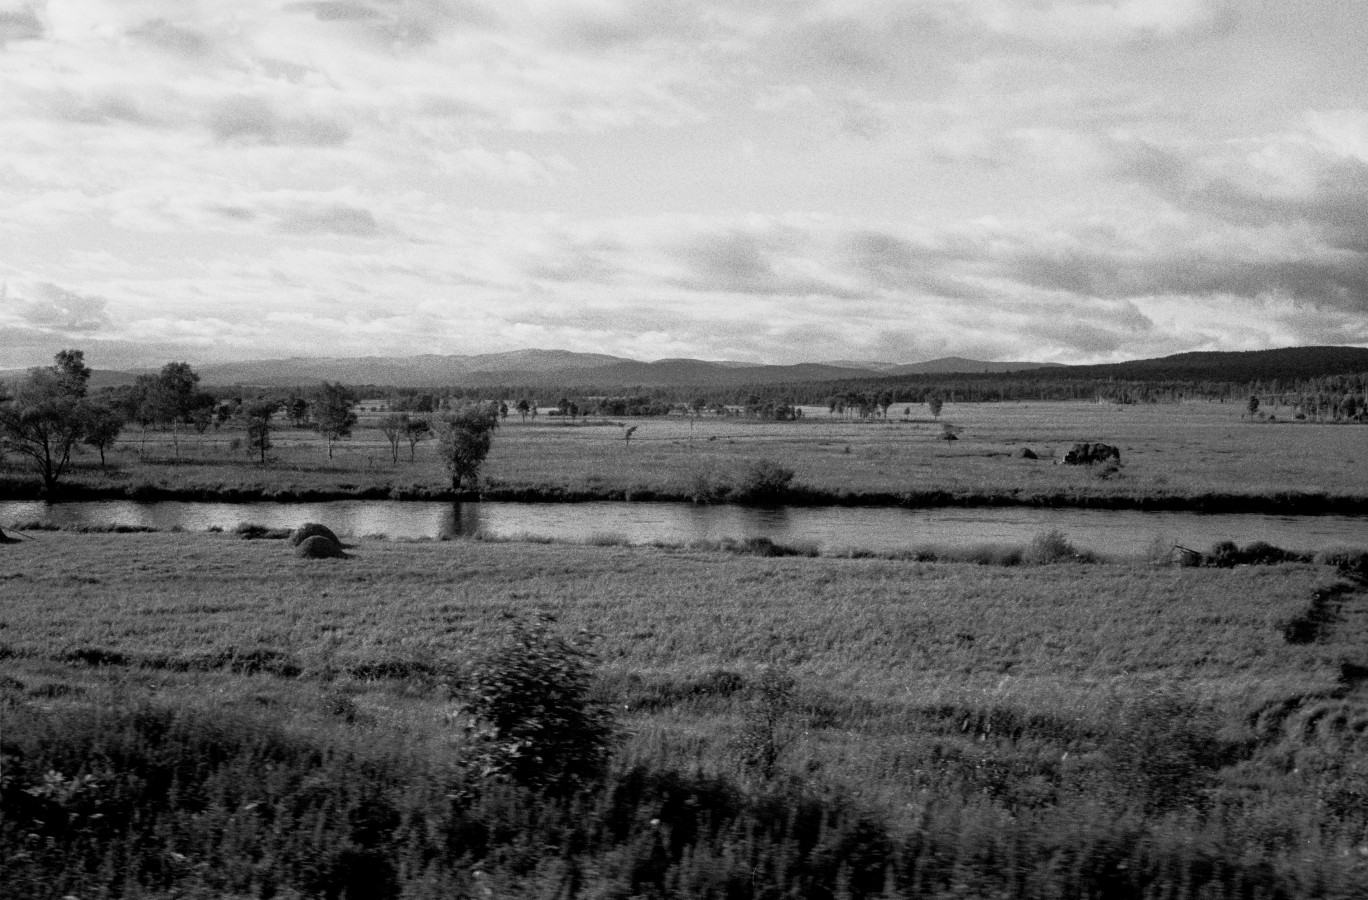 Endless landscapes rolling by